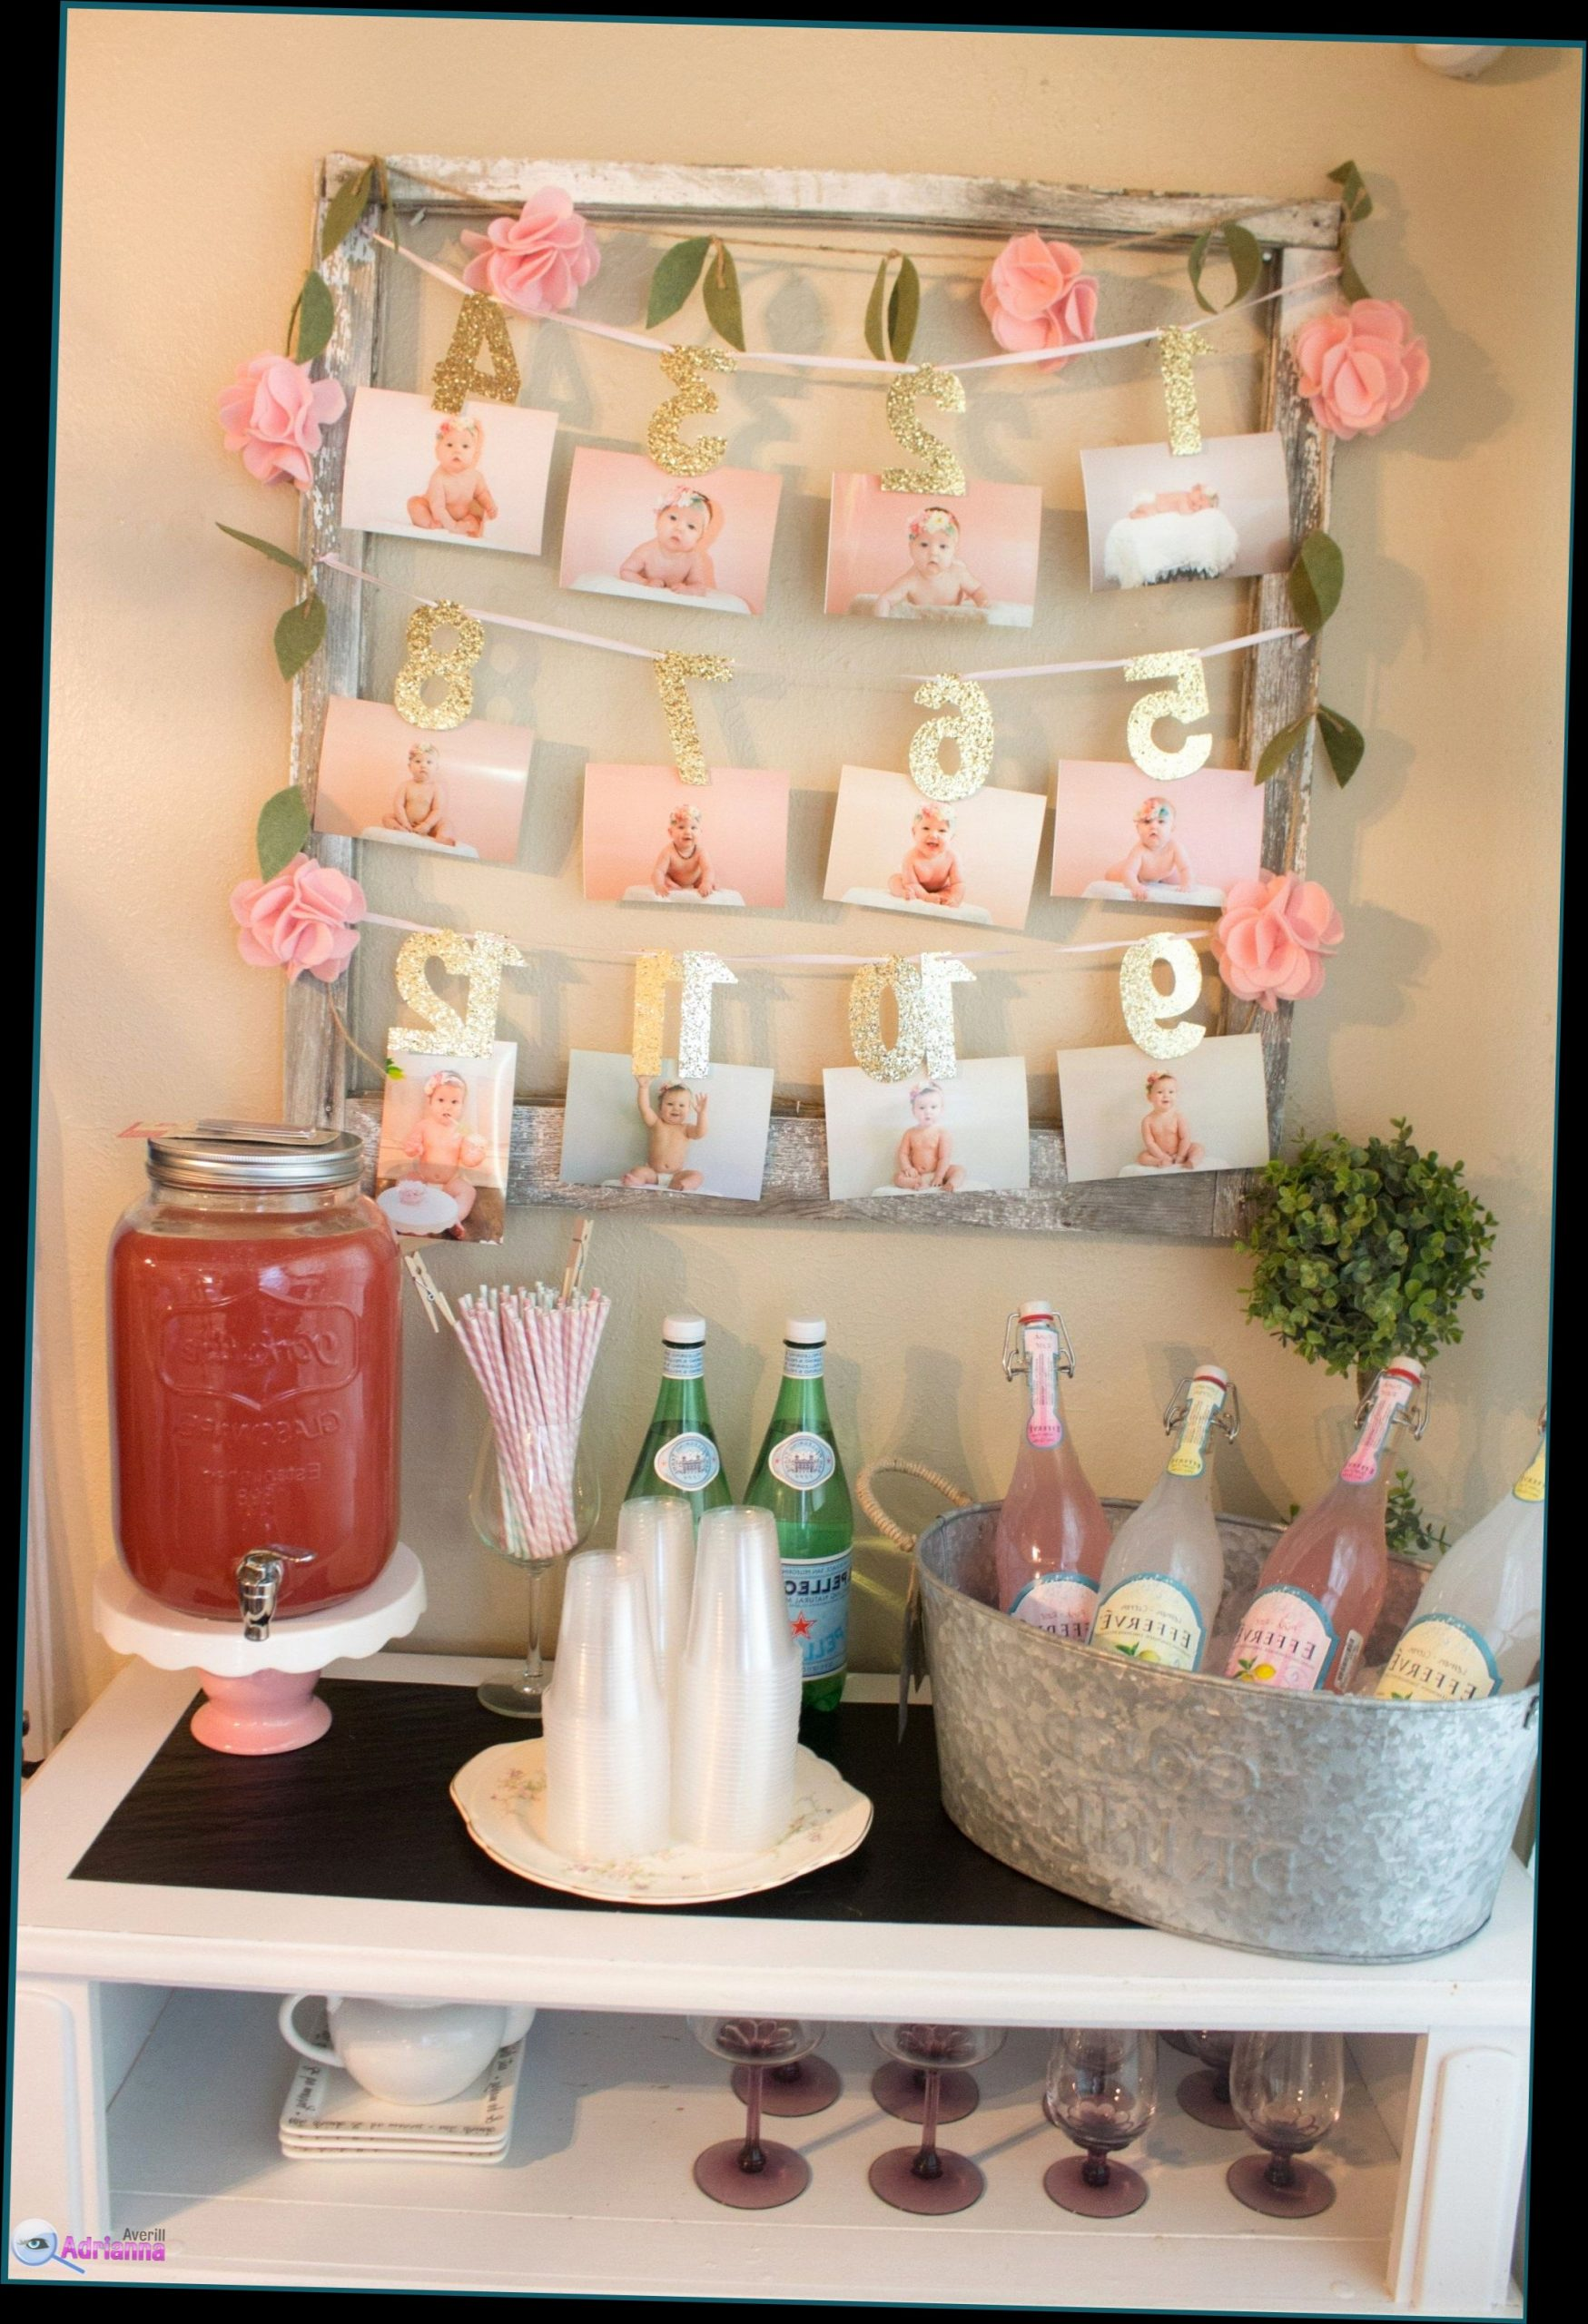 Baby Girl Birthday Decoration Ideas at Home Lovely Birthday Decoration at Home for Girl theme for 1st Baby